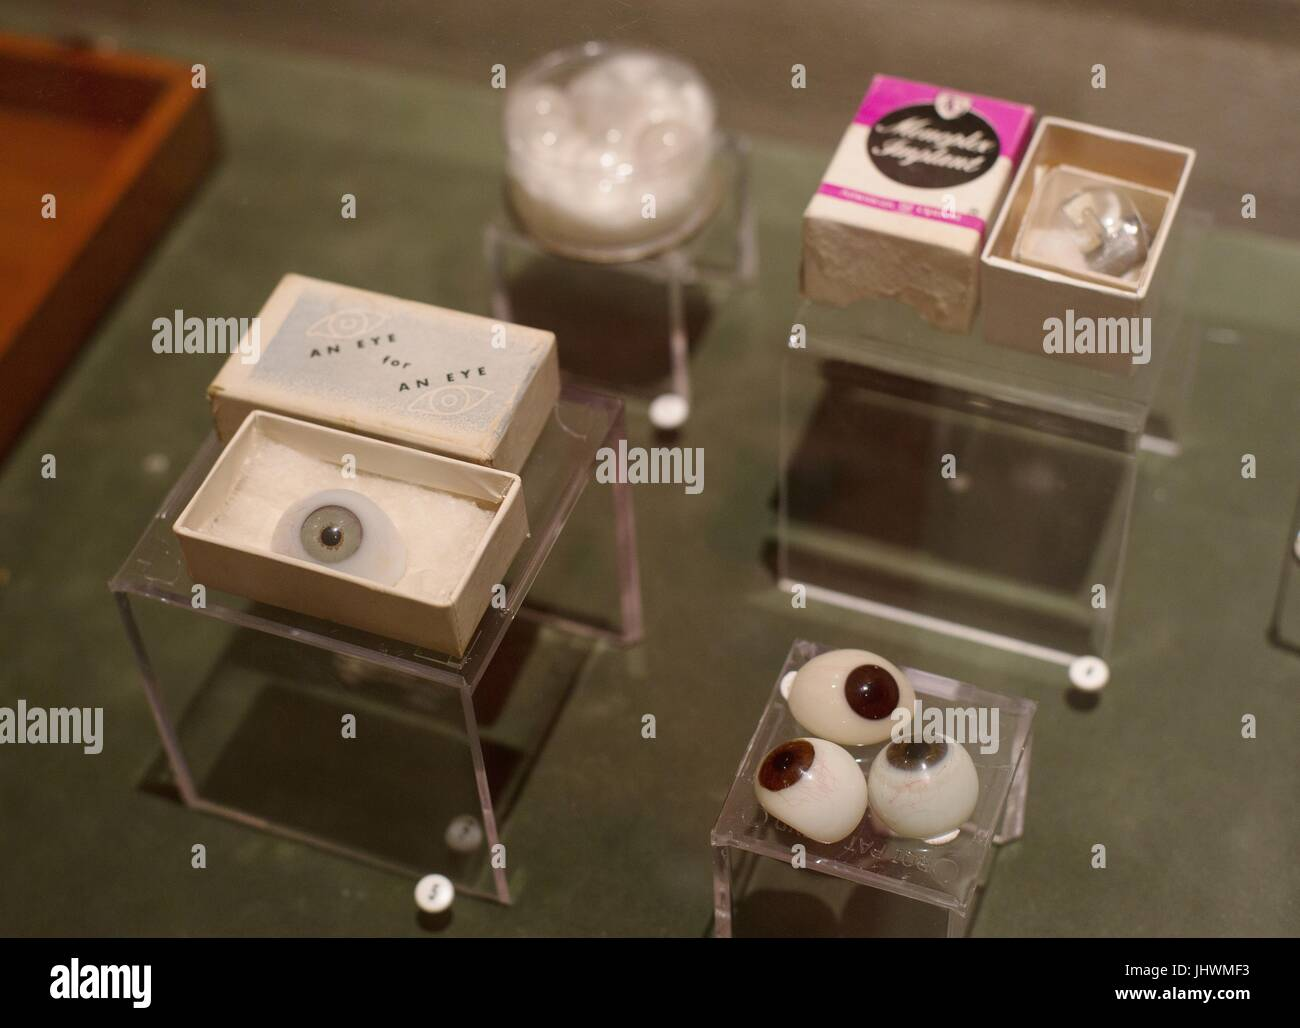 A display of prosthetic eyeballs at the International Museum of Surgical Sciences in Chicago, Illinois, USA. - Stock Image